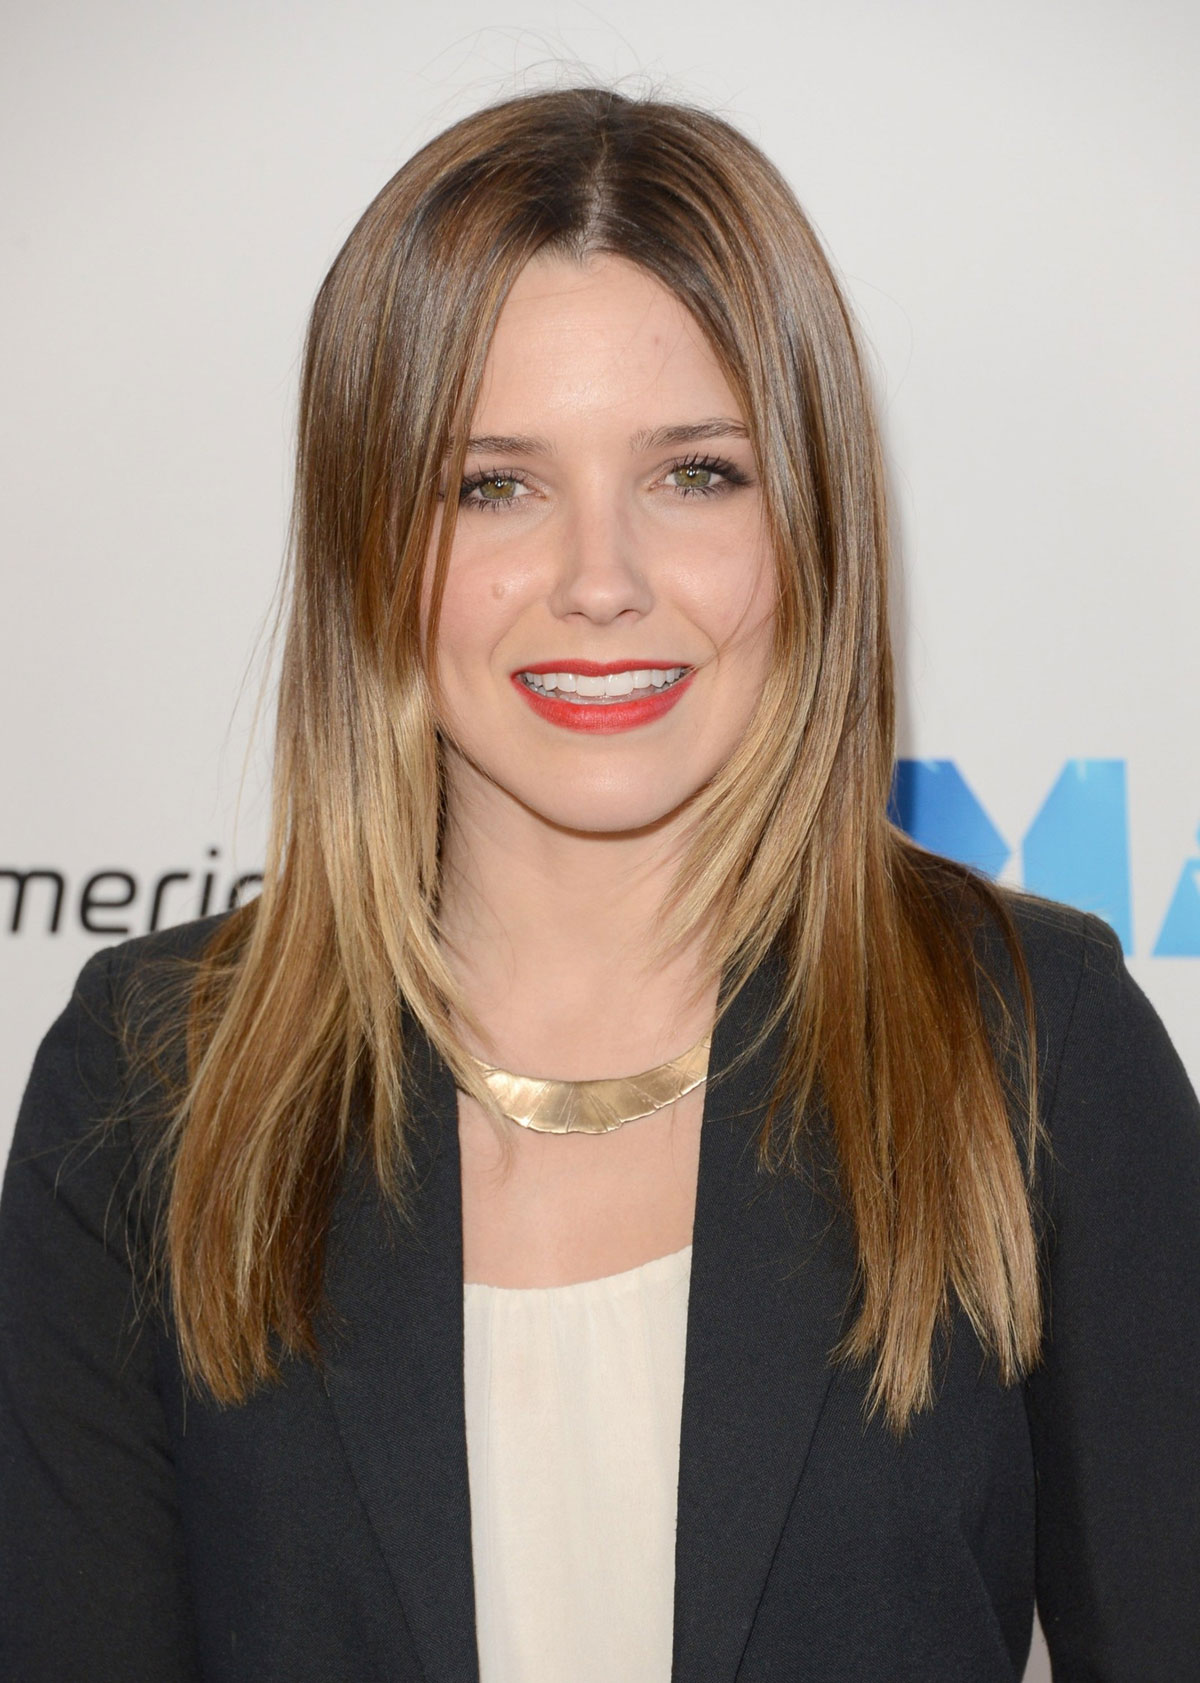 difference nhl 13 and 14 dating: who is sophia bush dating july 2012